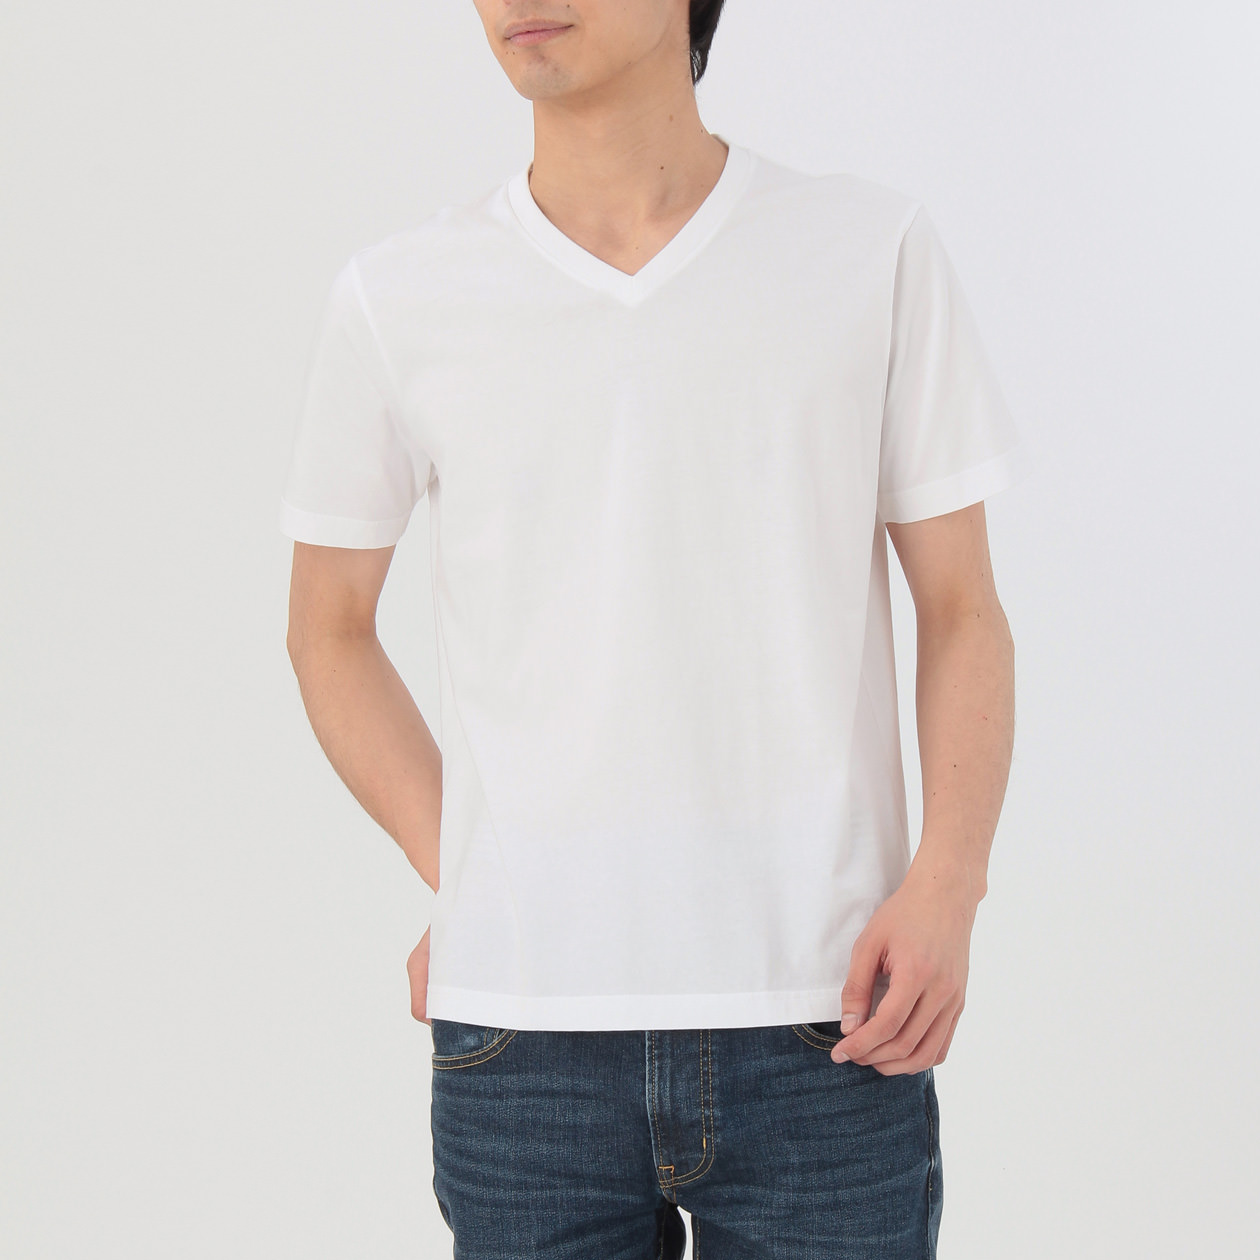 Muji Organic T-Shirt also available in round neck